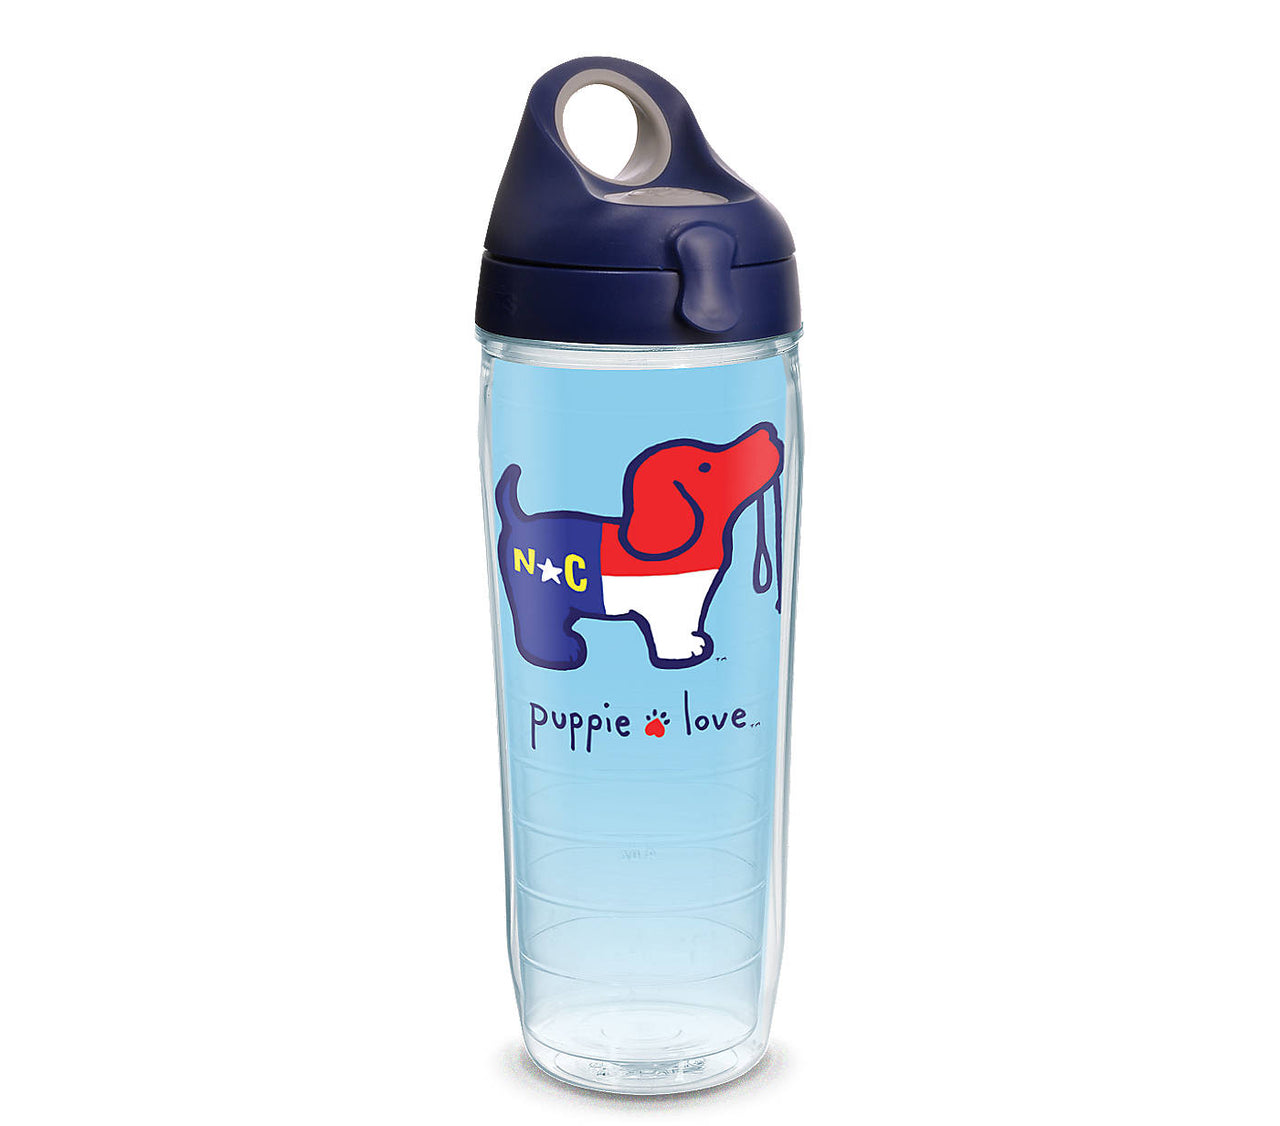 NORTH CAROLINA PUP WATER BOTTLE - Puppie Love